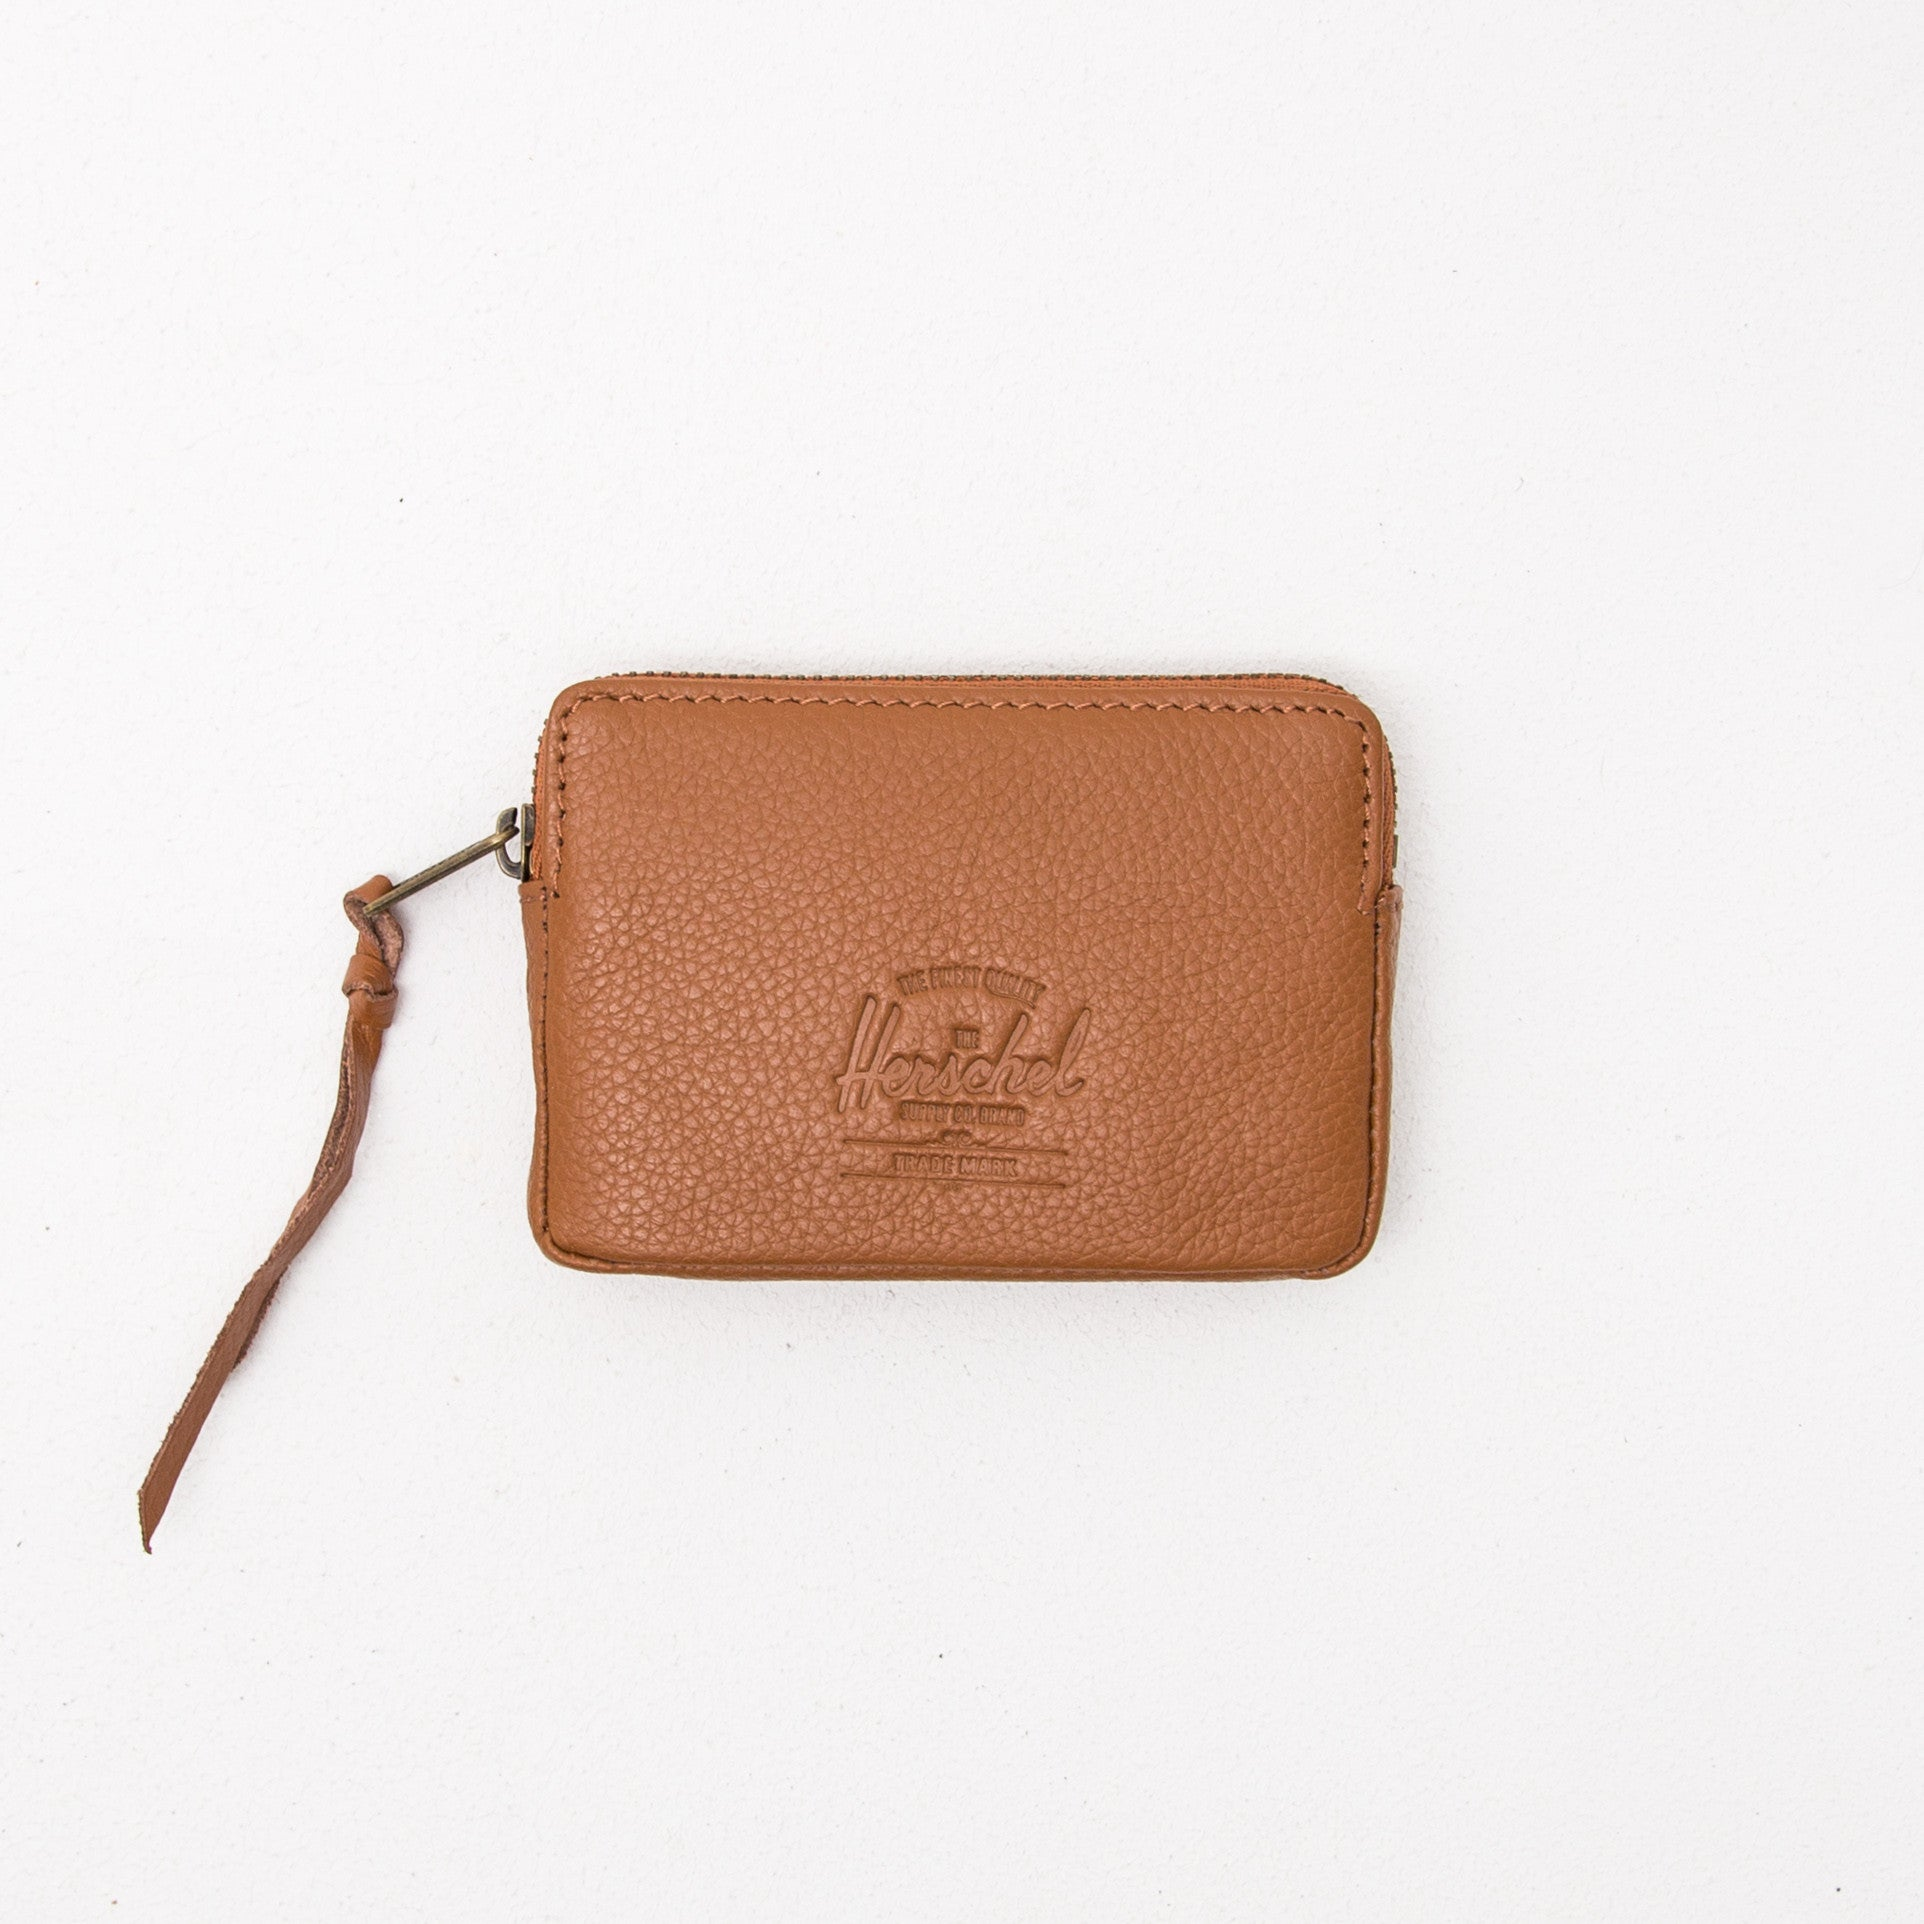 Oxford Wallet - Tan Pebbled Leather